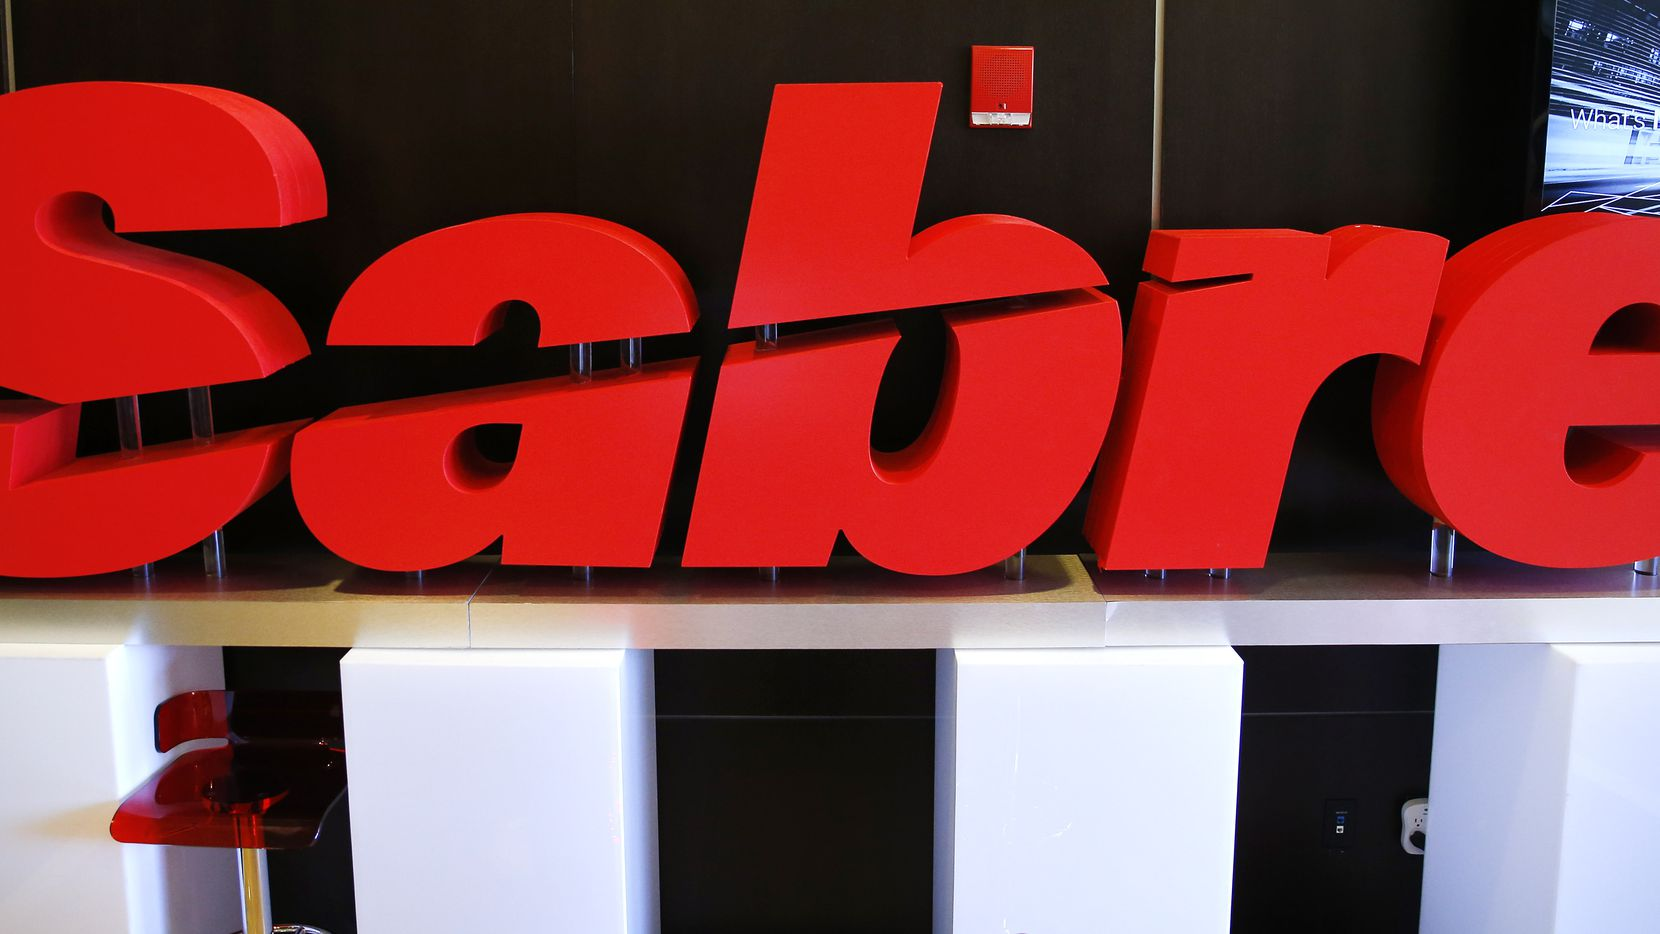 Sabre, a provider of technology services to the travel industry, posted revenue of $278.4 million in the third quarter.